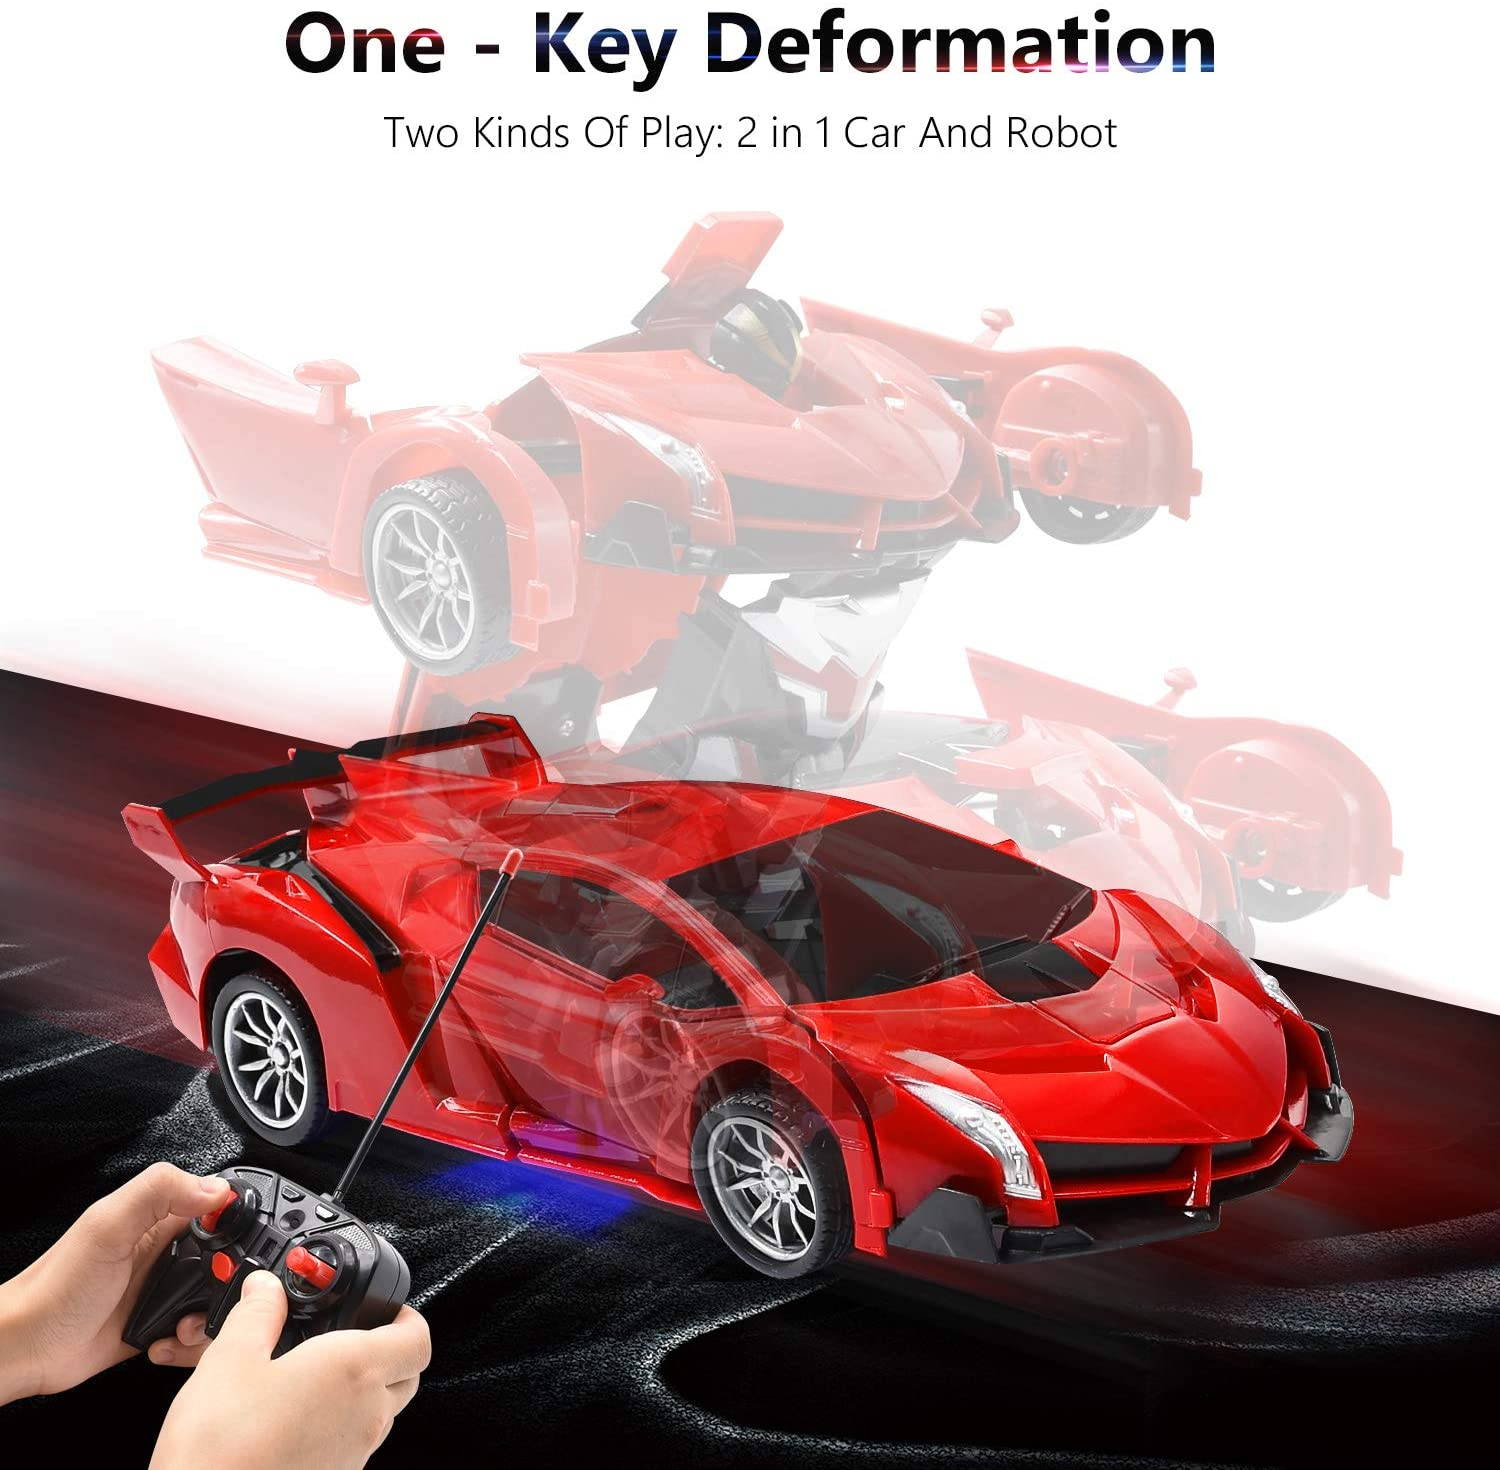 Transform RC Car Robot for Kids,R/C Transforming Robot Car,One Key Deformation Robot Car,One-Button Auto Demo&360 Rotate Speed Drifting &Rechargable for Kids